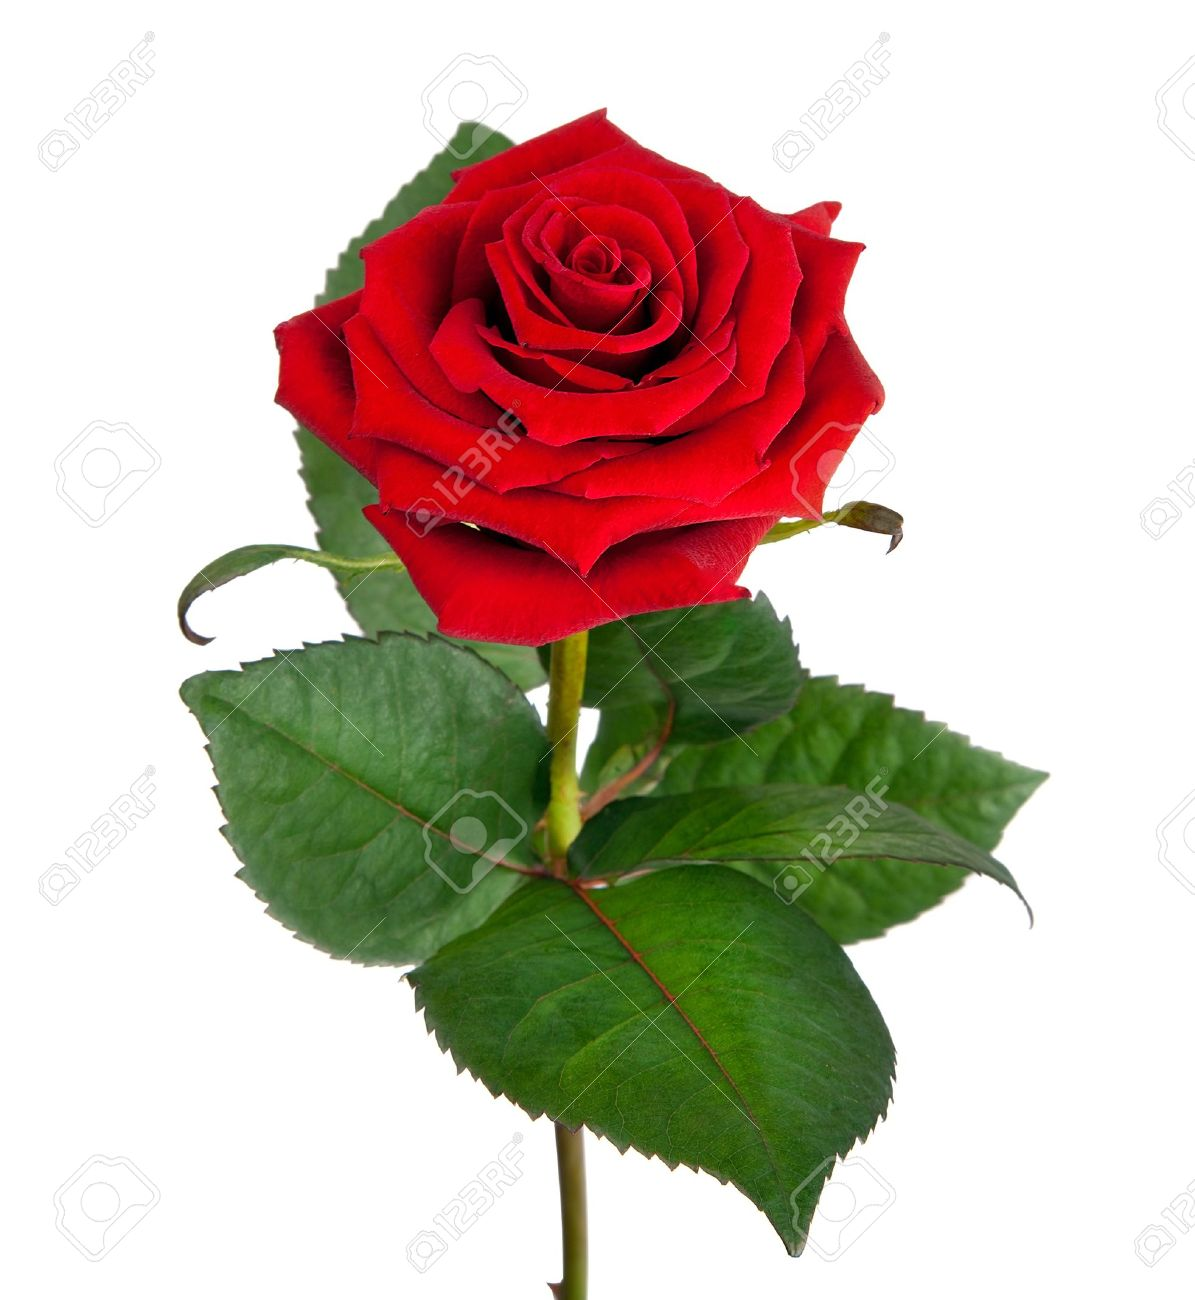 Single beautiful red rose isolated on white background stock photo single beautiful red rose isolated on white background stock photo 13432980 izmirmasajfo Choice Image